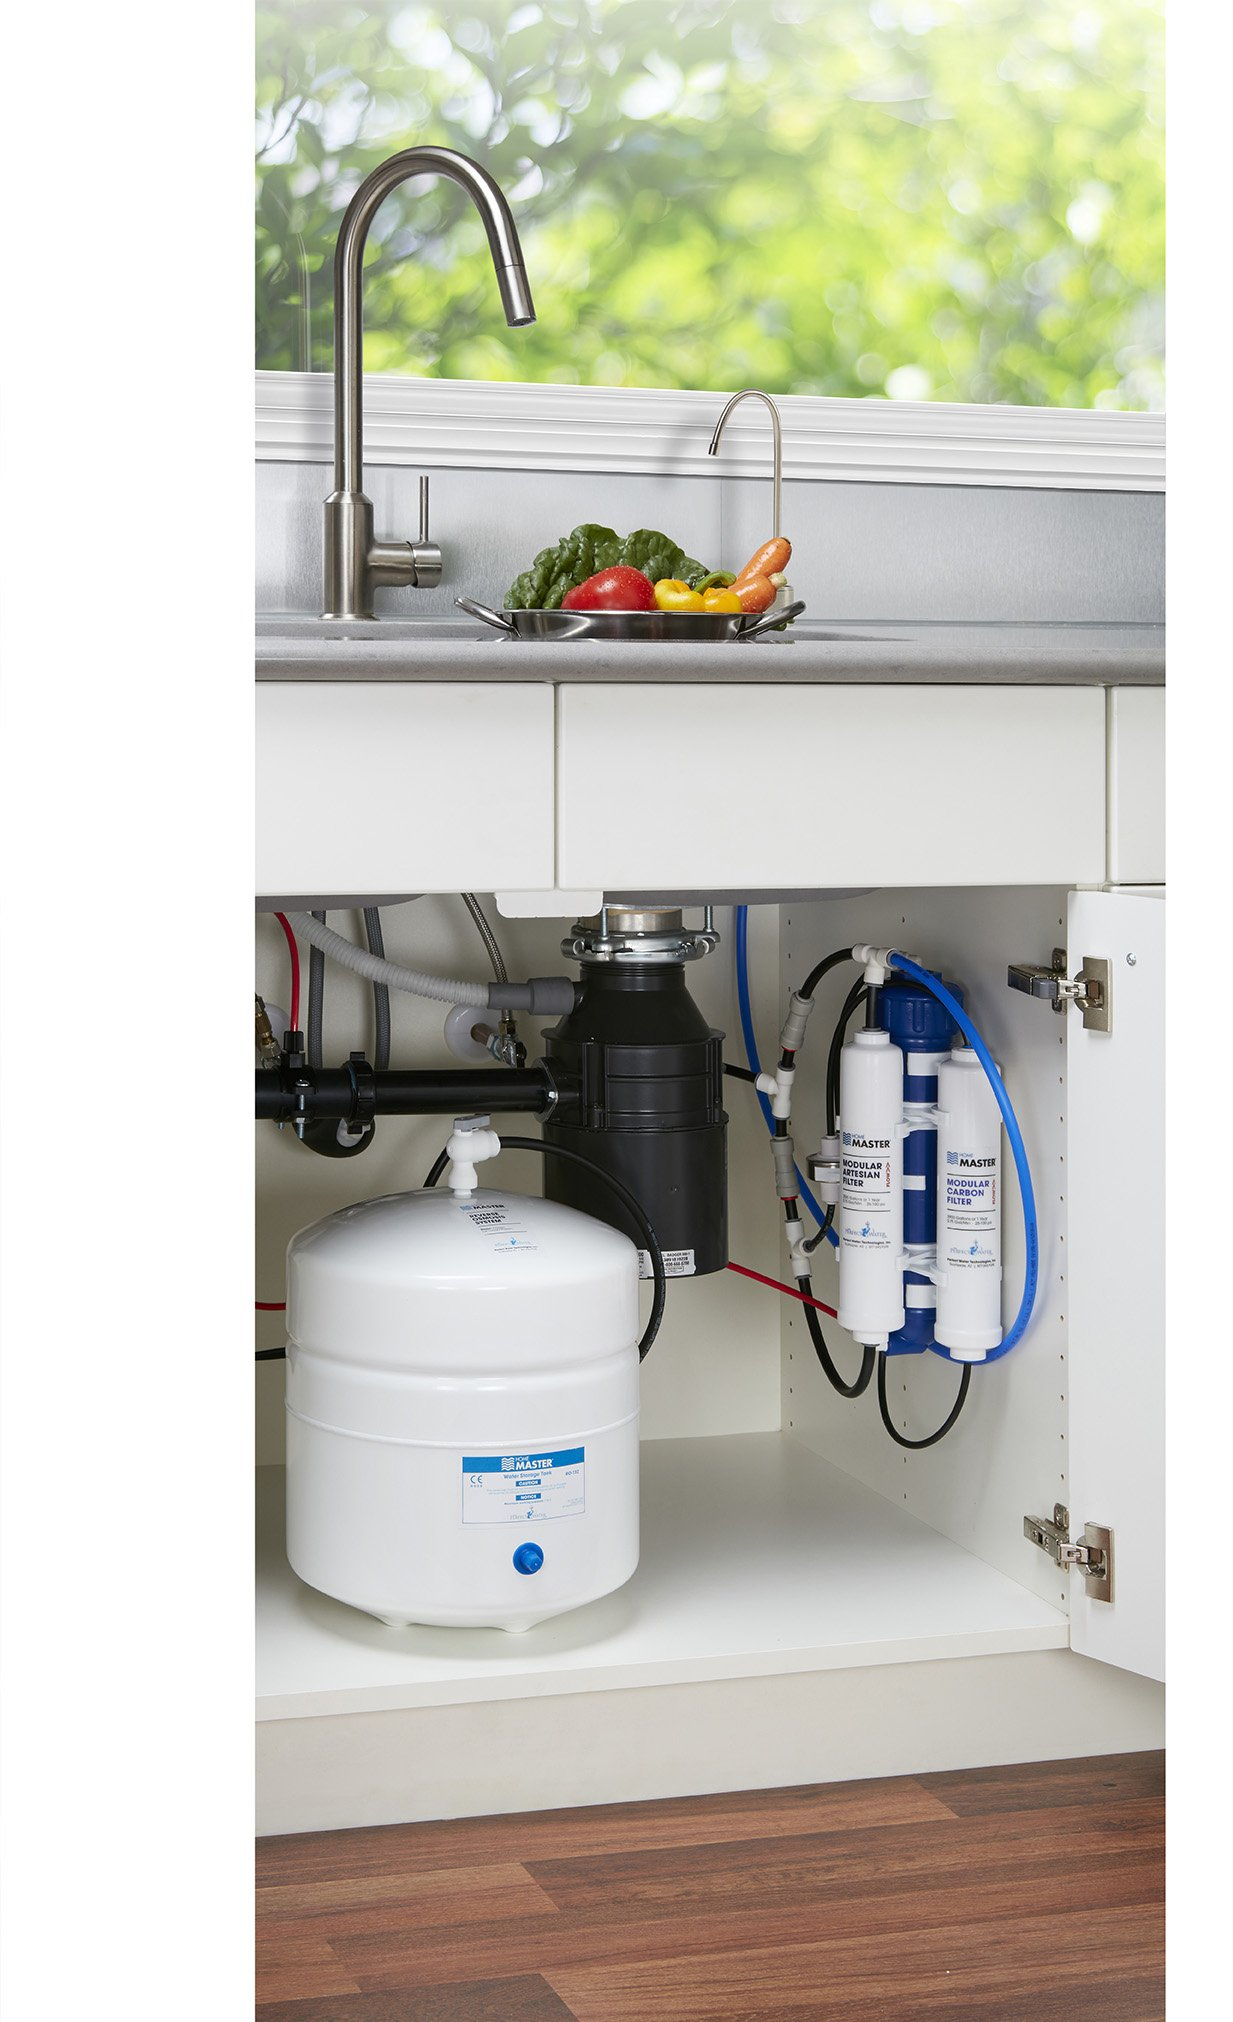 Home Master TMAFC-ERP-L Artesian Full Contact with Permeate Pump Loaded Undersink Reverse Osmosis Water Filter System by Home Master (Image #2)